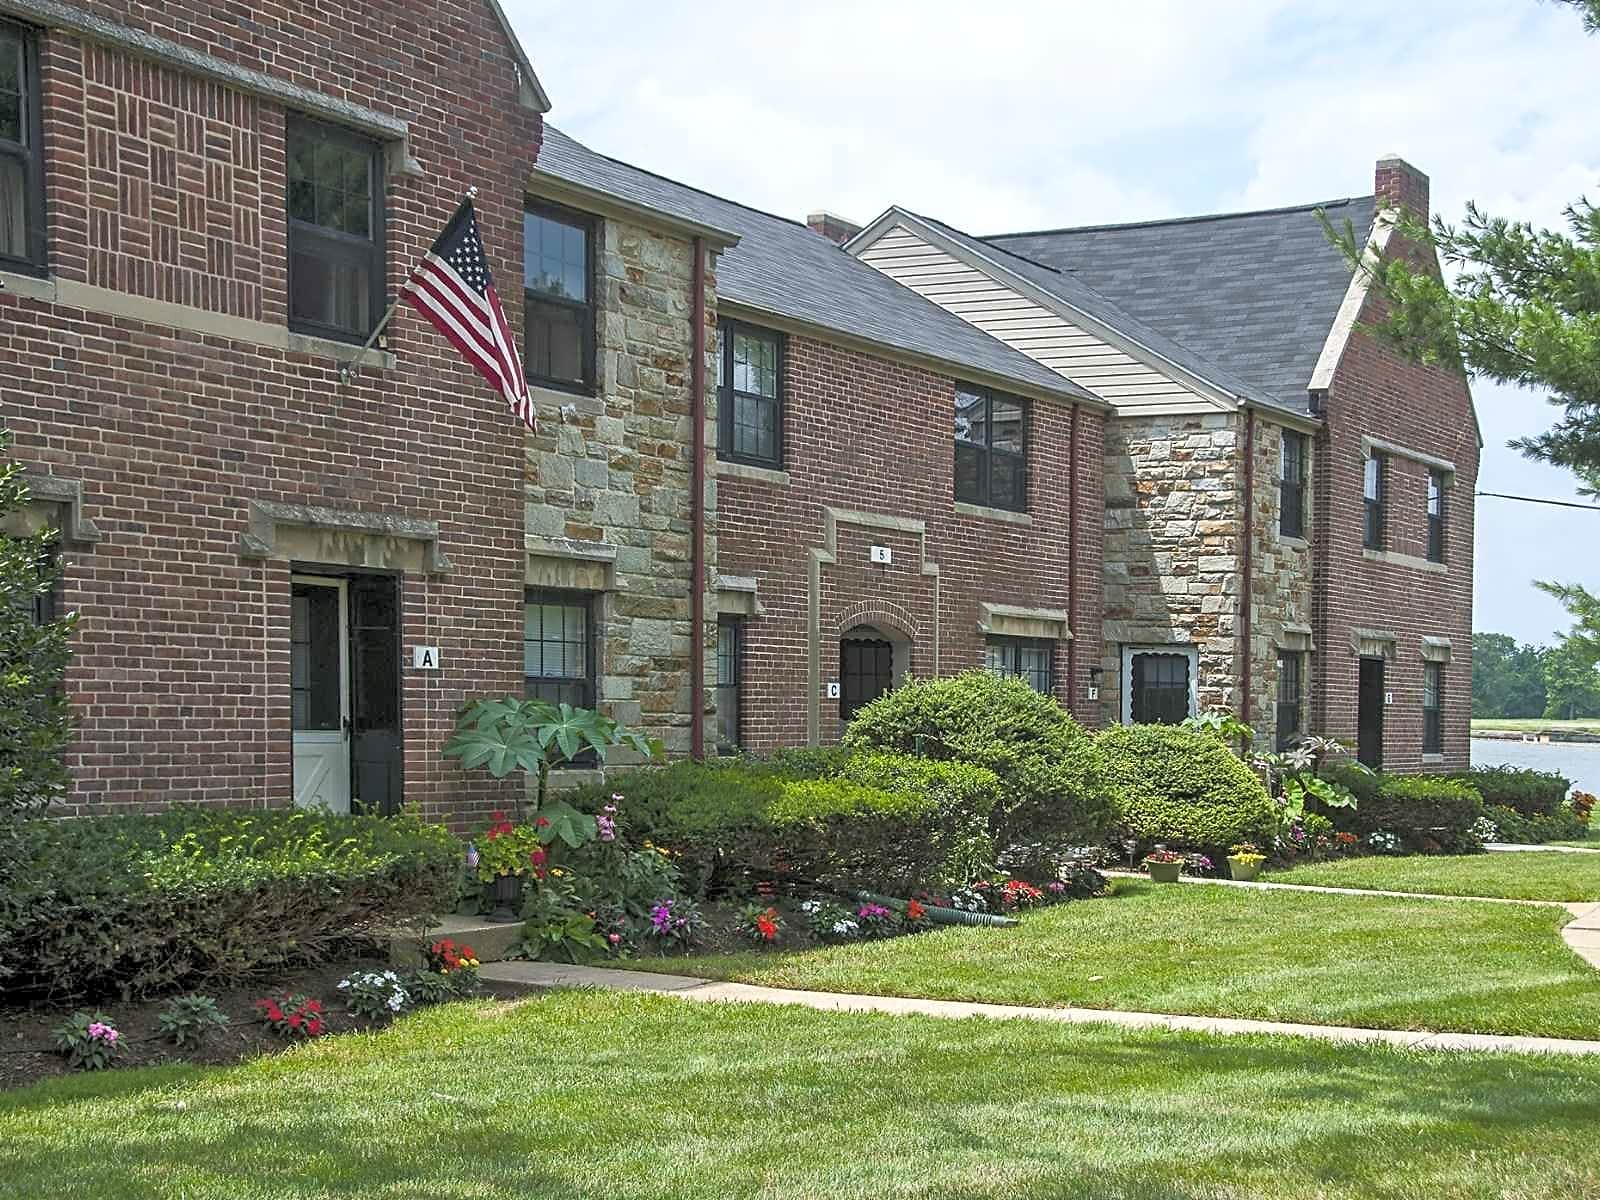 3 bedroom houses for rent in middle river md 7 rental homes - 3 bedroom townhomes for rent in md ...